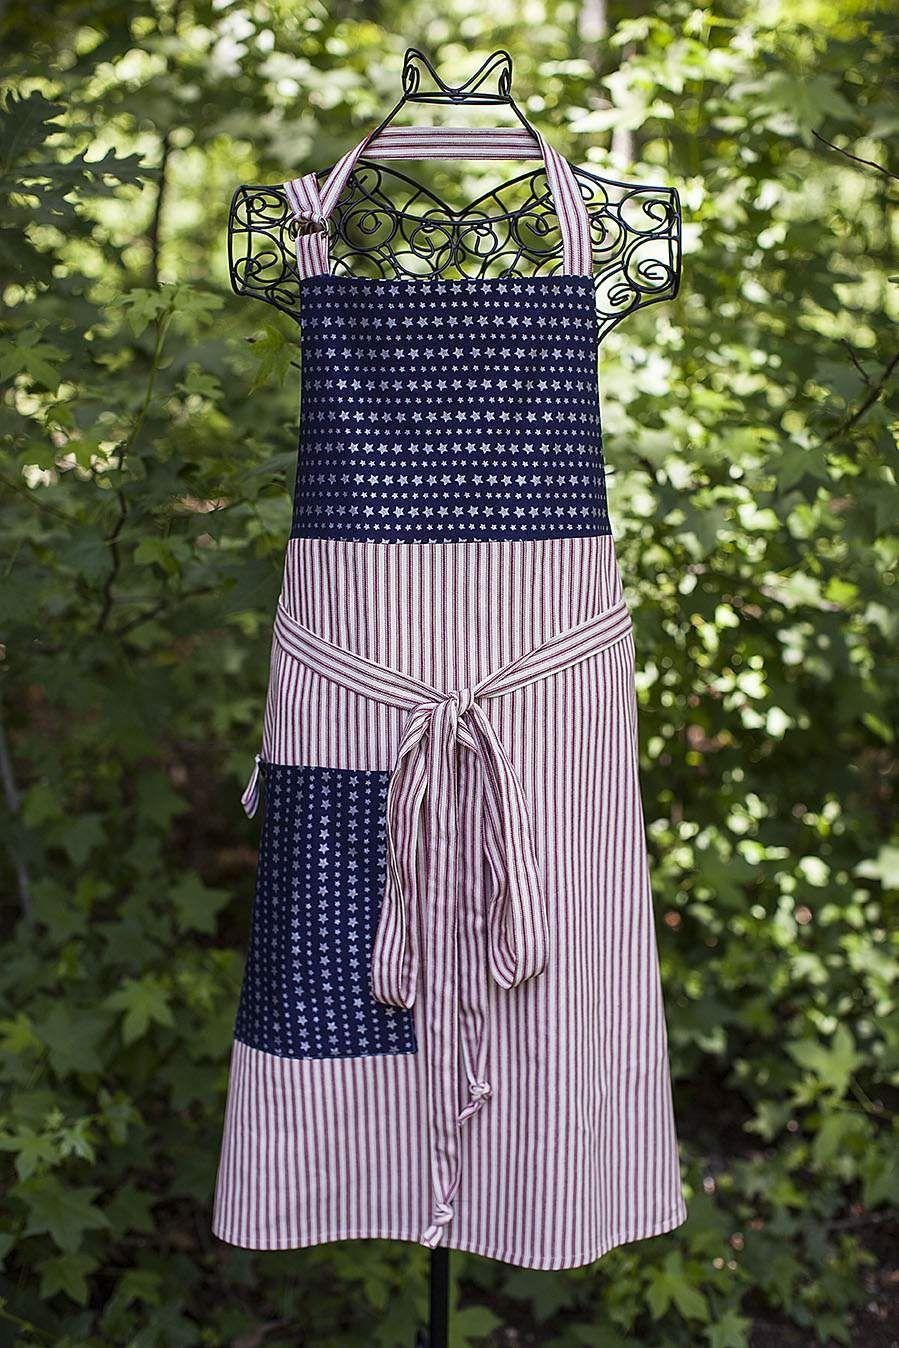 """<p>Even if you'll be manning the grill all night, you can still don your 4th of July best. With a little sewing know-how, you can whip up this impressive star-spangled apron. (Of course, there are store-bought versions, too.) </p><p><a class=""""link rapid-noclick-resp"""" href=""""https://celebrate-creativity.com/my_weblog/2016/06/patriotic-apron.html"""" rel=""""nofollow noopener"""" target=""""_blank"""" data-ylk=""""slk:GET THE TUTORIAL"""">GET THE TUTORIAL</a></p><p> <a class=""""link rapid-noclick-resp"""" href=""""https://www.amazon.com/DII-Cotton-Vintage-American-Apronwith/dp/B01N443896/ref=sr_1_19_sspa?dchild=1&keywords=4th+of+july+apron&qid=1591665567&sr=8-19-spons&psc=1&spLa=ZW5jcnlwdGVkUXVhbGlmaWVyPUFPQUw1NEFJQTJXQUYmZW5jcnlwdGVkSWQ9QTAyMTE5MTMzOEpMVzBDREw1UU1YJmVuY3J5cHRlZEFkSWQ9QTA2NDk3NTAzNEtXSTlaRjNQTk5JJndpZGdldE5hbWU9c3BfbXRmJmFjdGlvbj1jbGlja1JlZGlyZWN0JmRvTm90TG9nQ2xpY2s9dHJ1ZQ%3D%3D&tag=syn-yahoo-20&ascsubtag=%5Bartid%7C10072.g.32715018%5Bsrc%7Cyahoo-us"""" rel=""""nofollow noopener"""" target=""""_blank"""" data-ylk=""""slk:SHOP APRON"""">SHOP APRON</a></p>"""